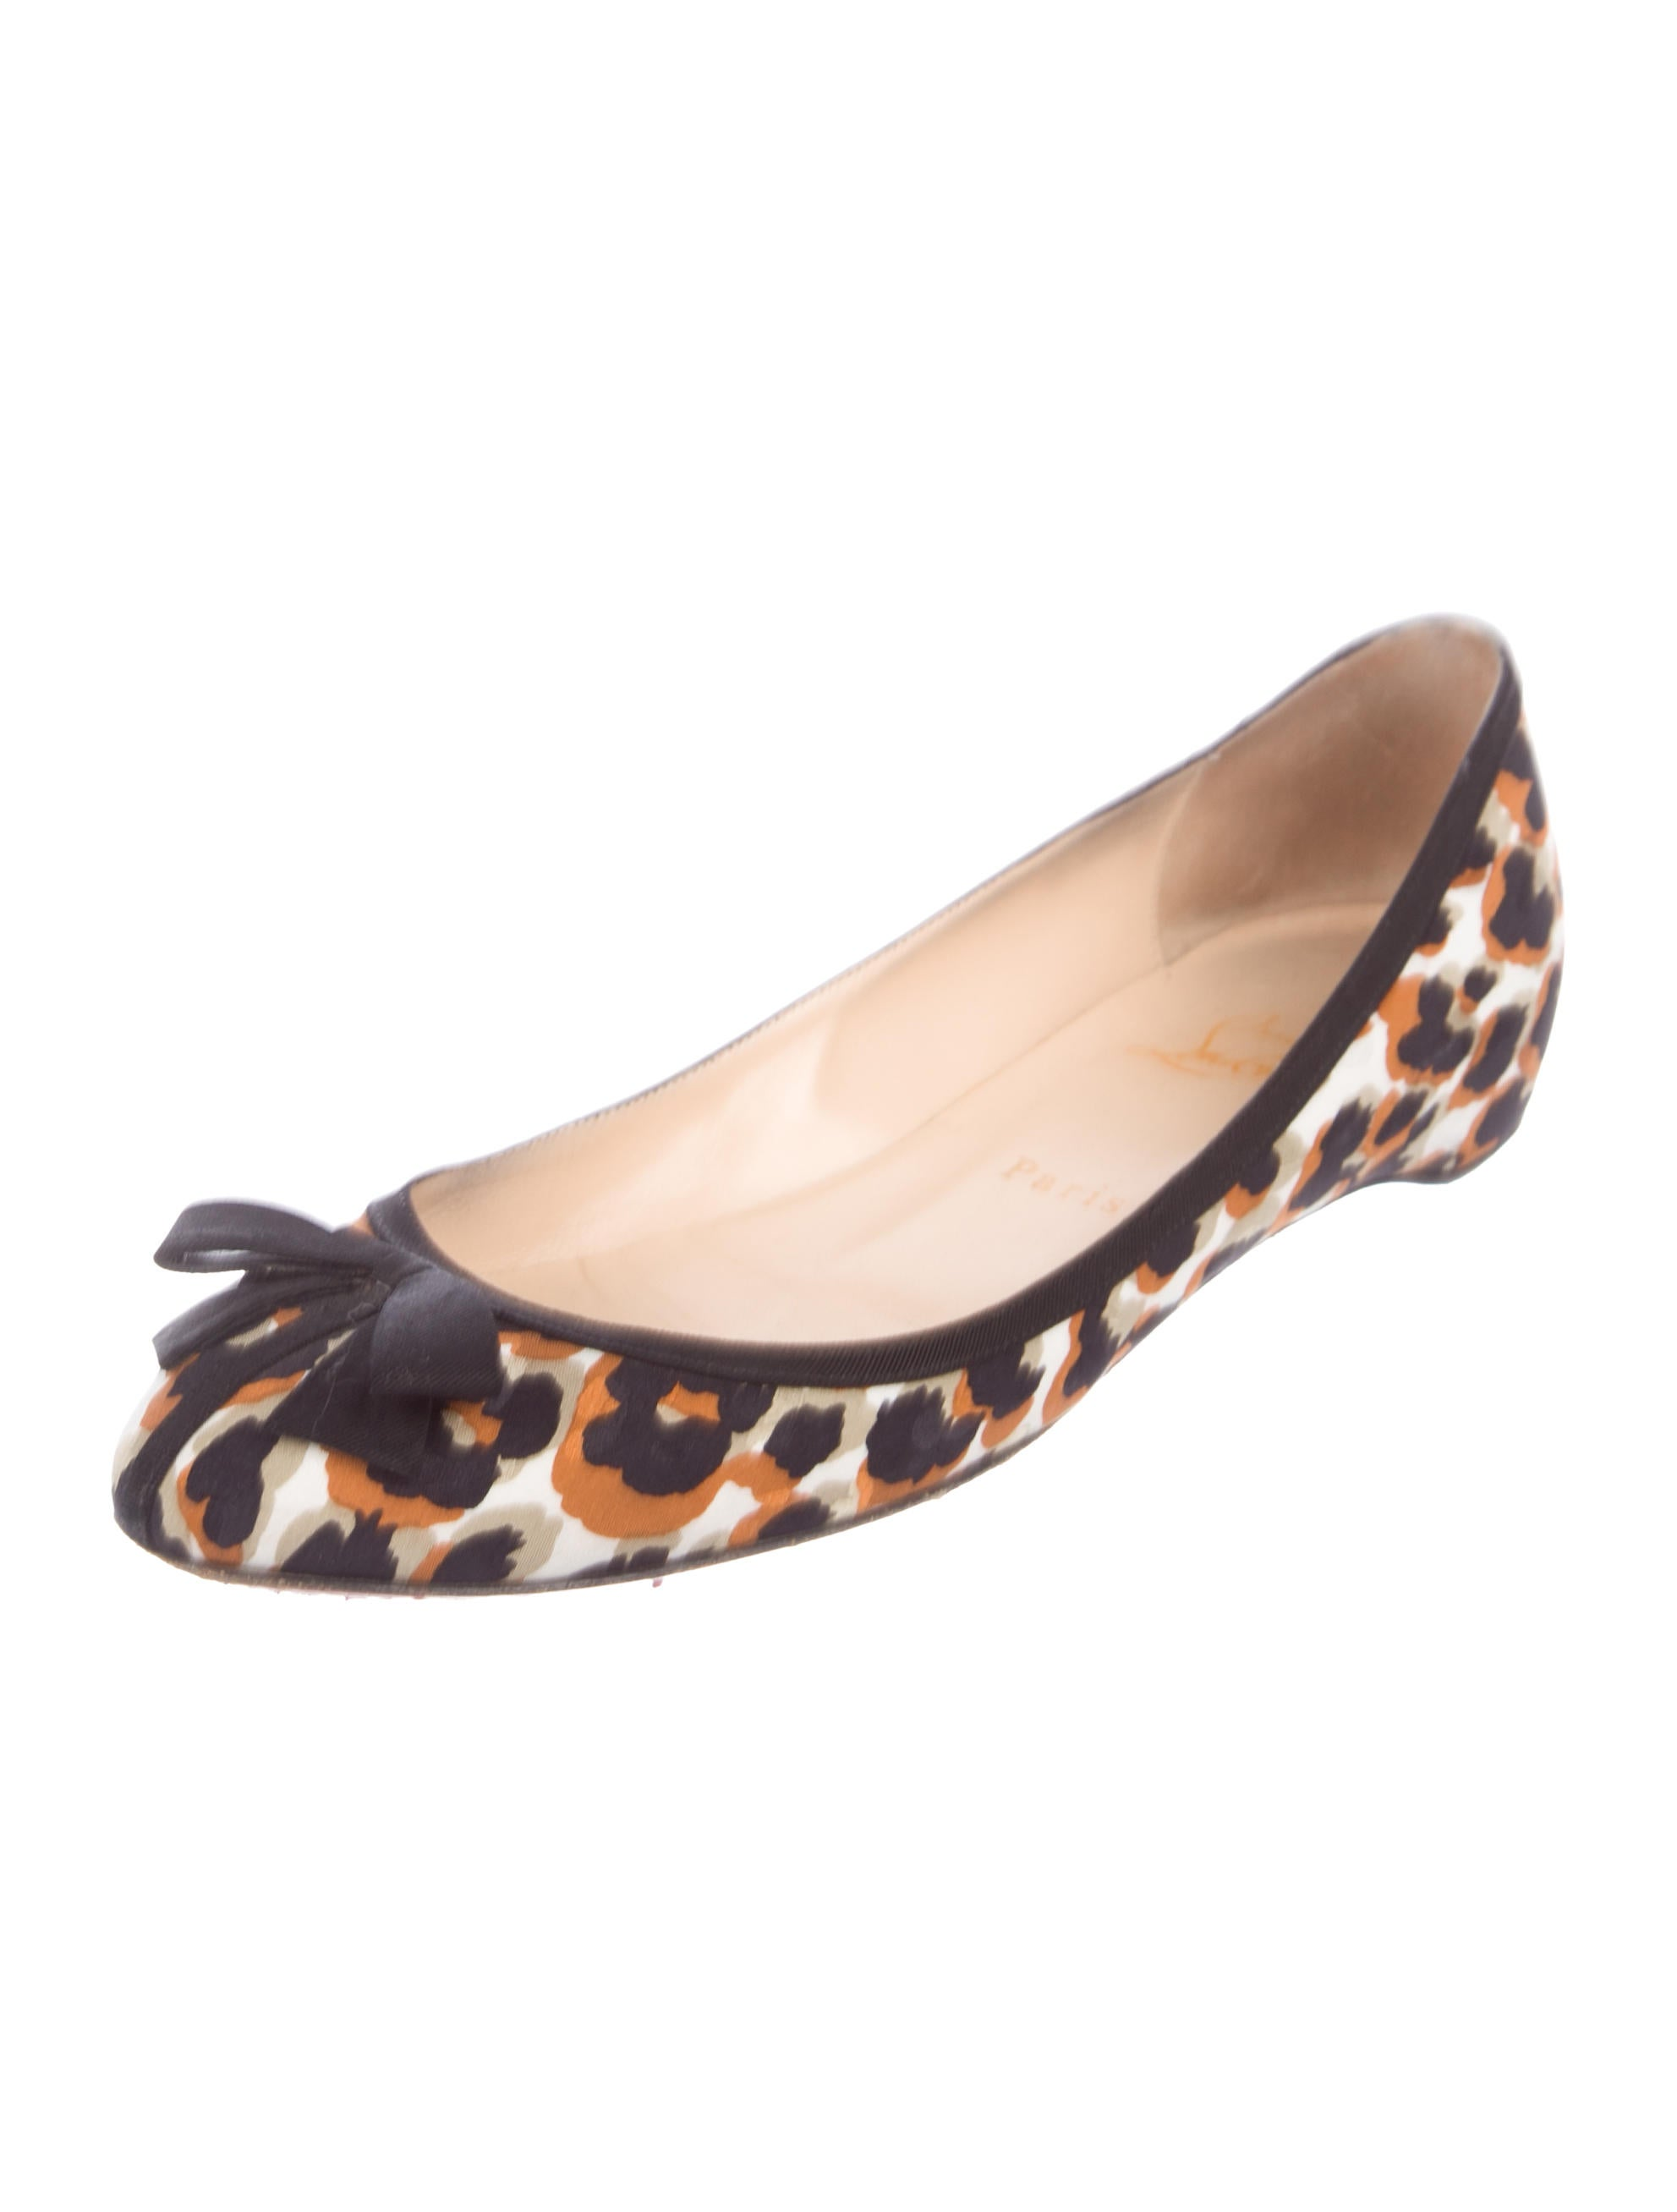 outlet official site Christian Louboutin Printed Bow-Accented Flats buy cheap pick a best free shipping buy low shipping fee cheap online fashionable cheap price 0WgukF9UZG